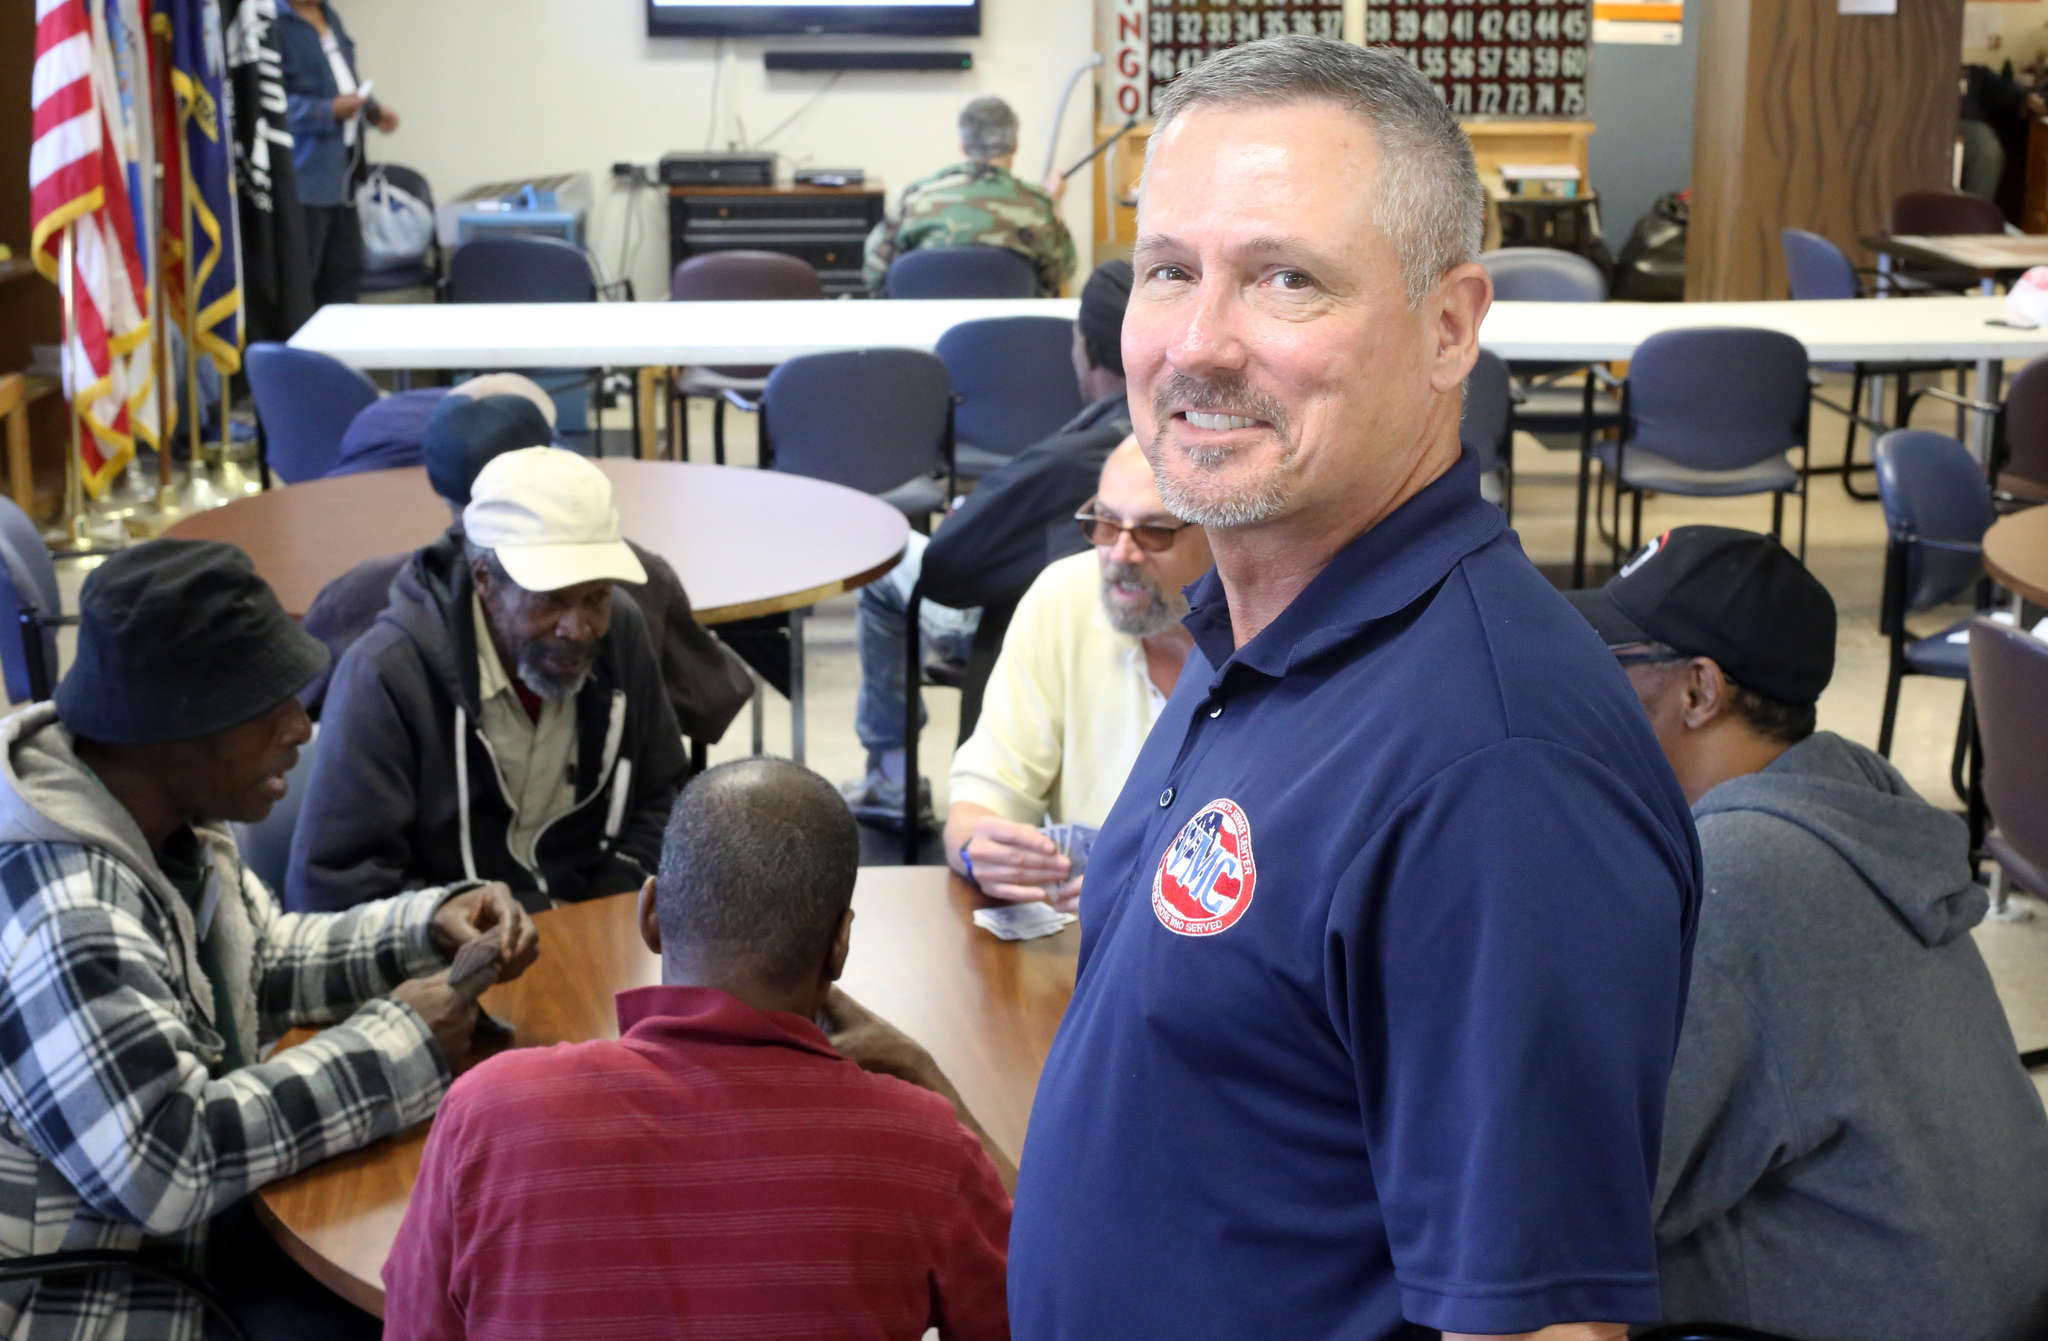 Tim Williams oversees veterans playing cards at the Veterans Multi-Service Center on North Fourth Street. He can relate: For him, the transition to civilian life was particularly rough.